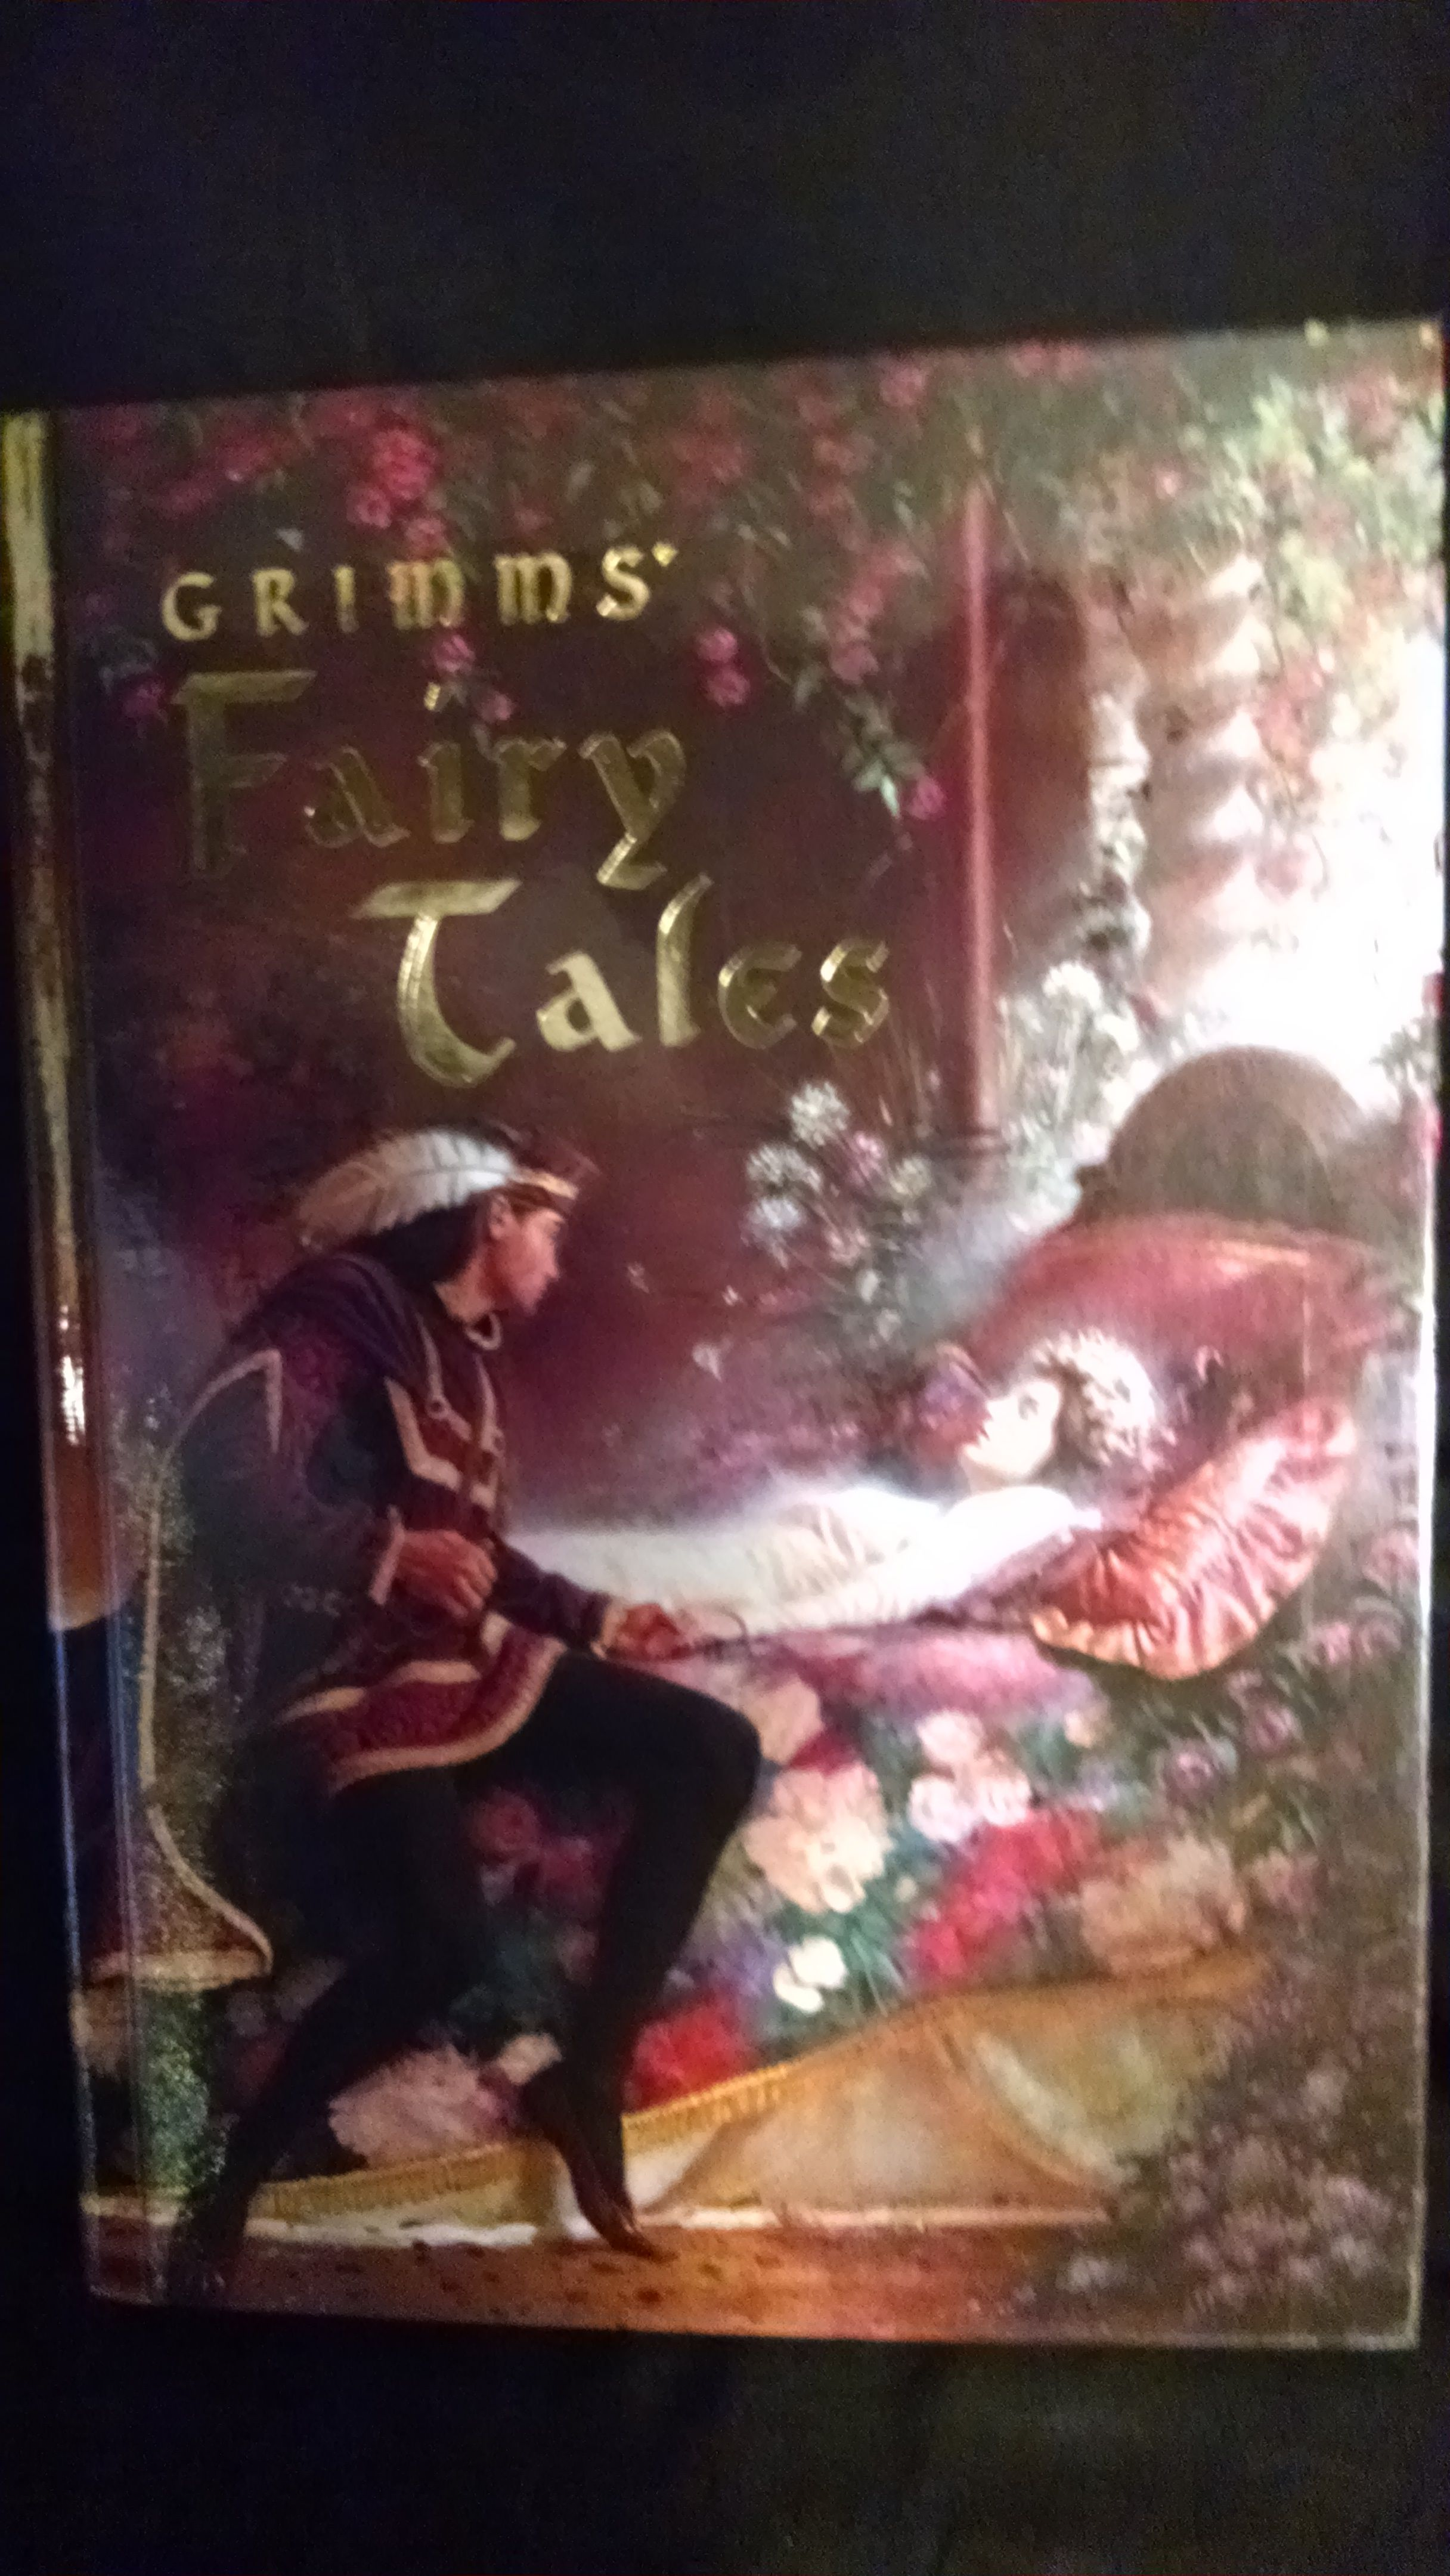 Grimms' Fairy Tales, I...